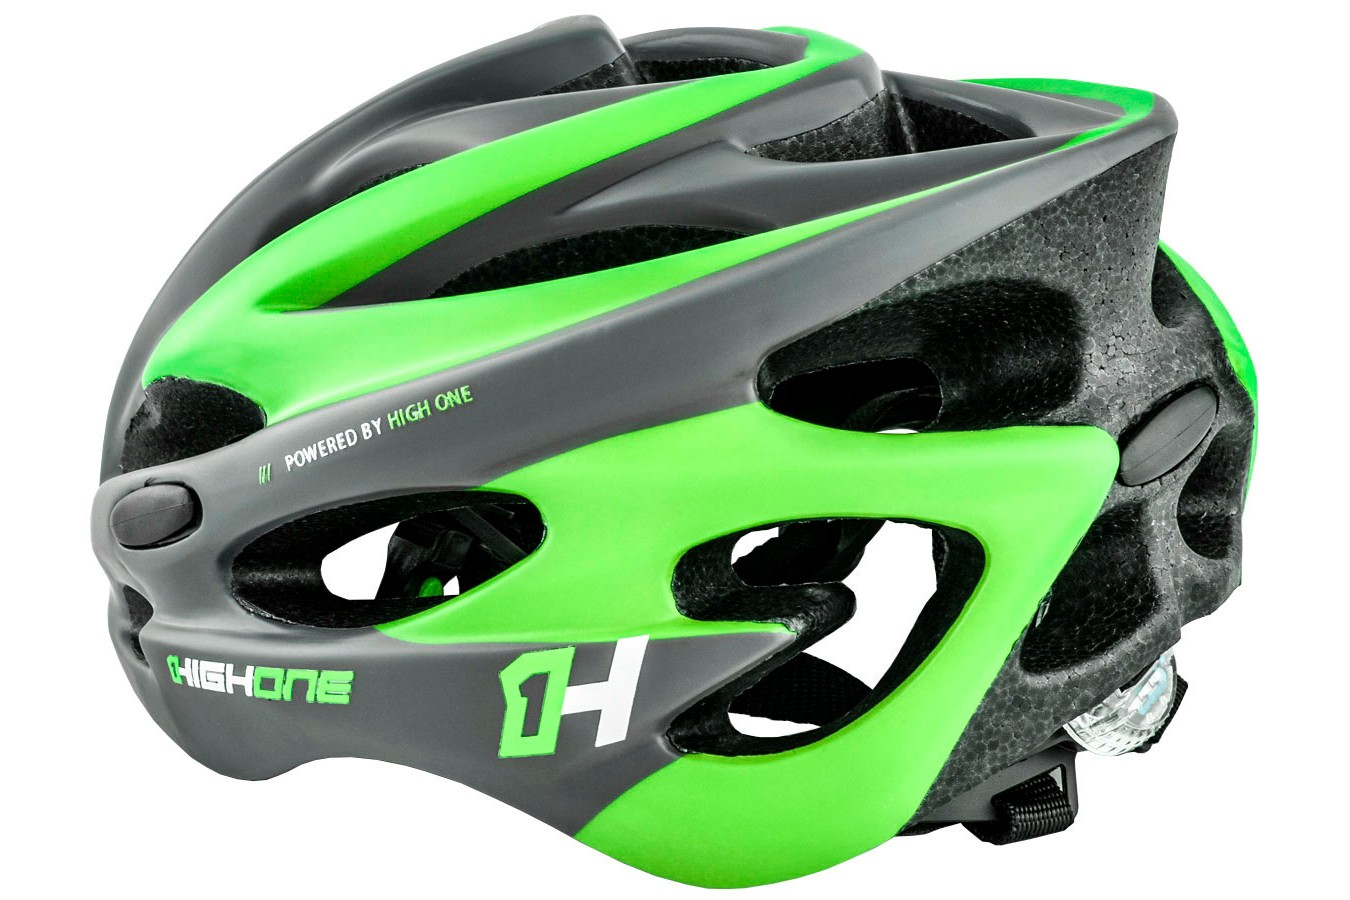 Capacete de ciclista verde com LED Volcano 19 High One